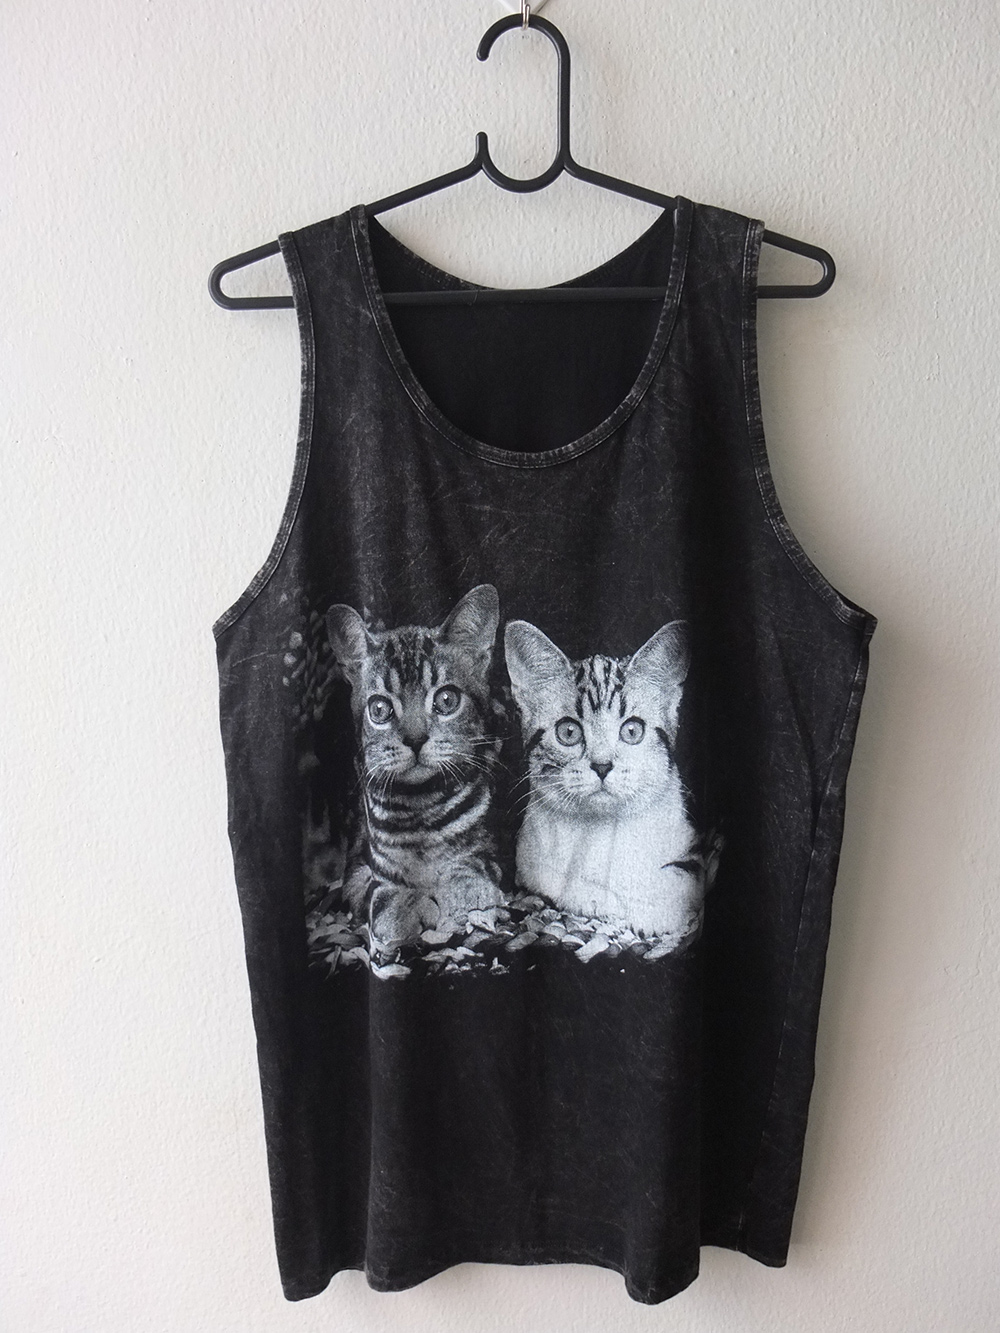 kitty_cat_double_cute_pop_rock_fashion_stone_wash_tank_top_tanks_tops_and_camis_3.jpg